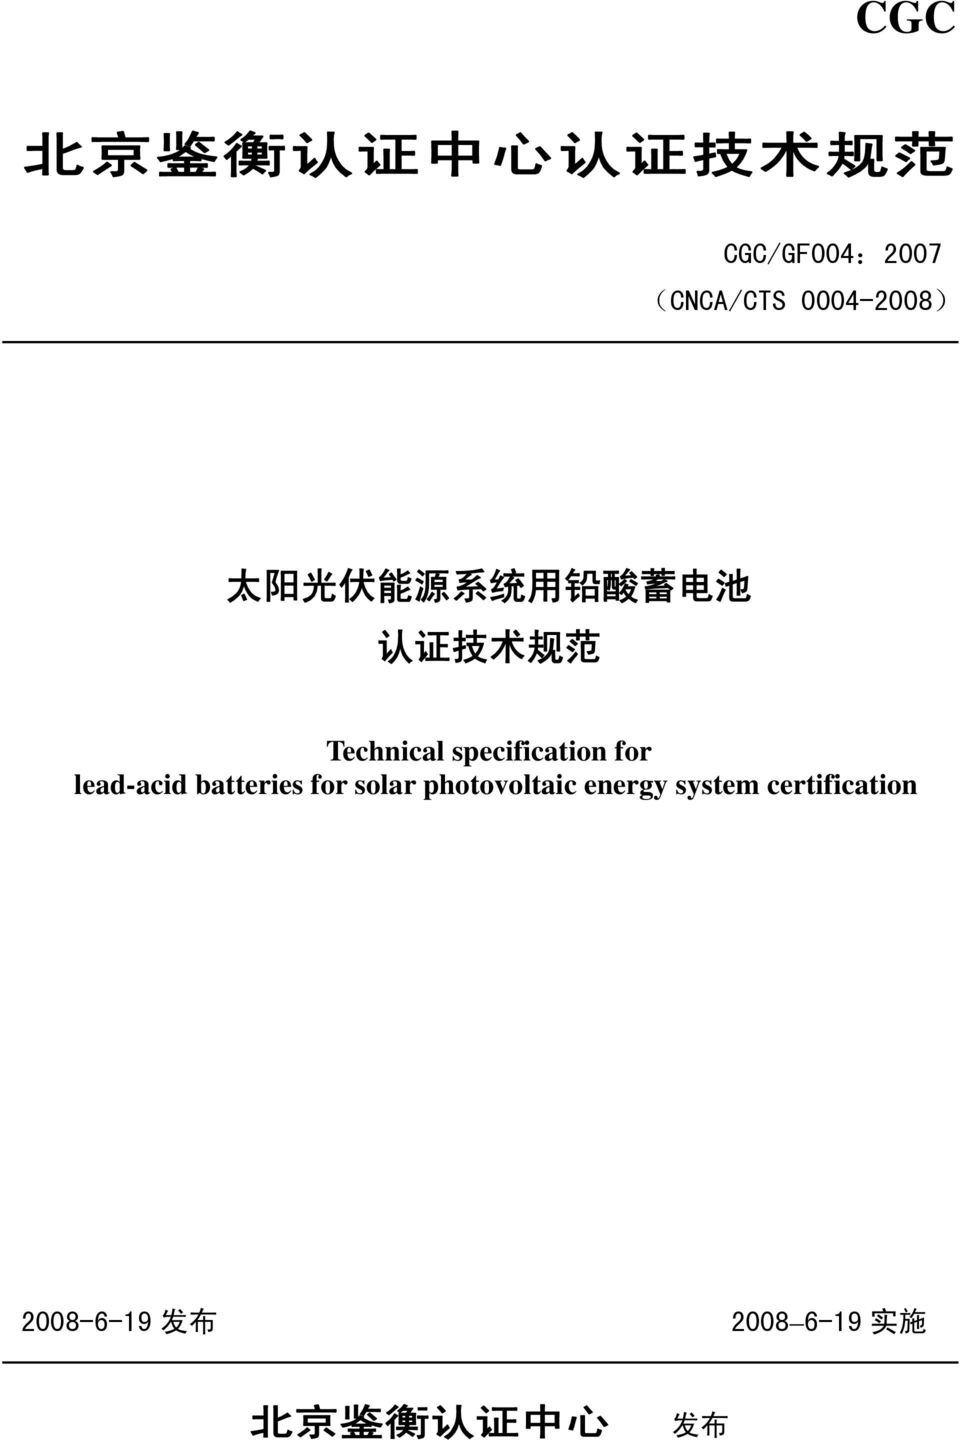 specification for lead-acid batteries for solar photovoltaic